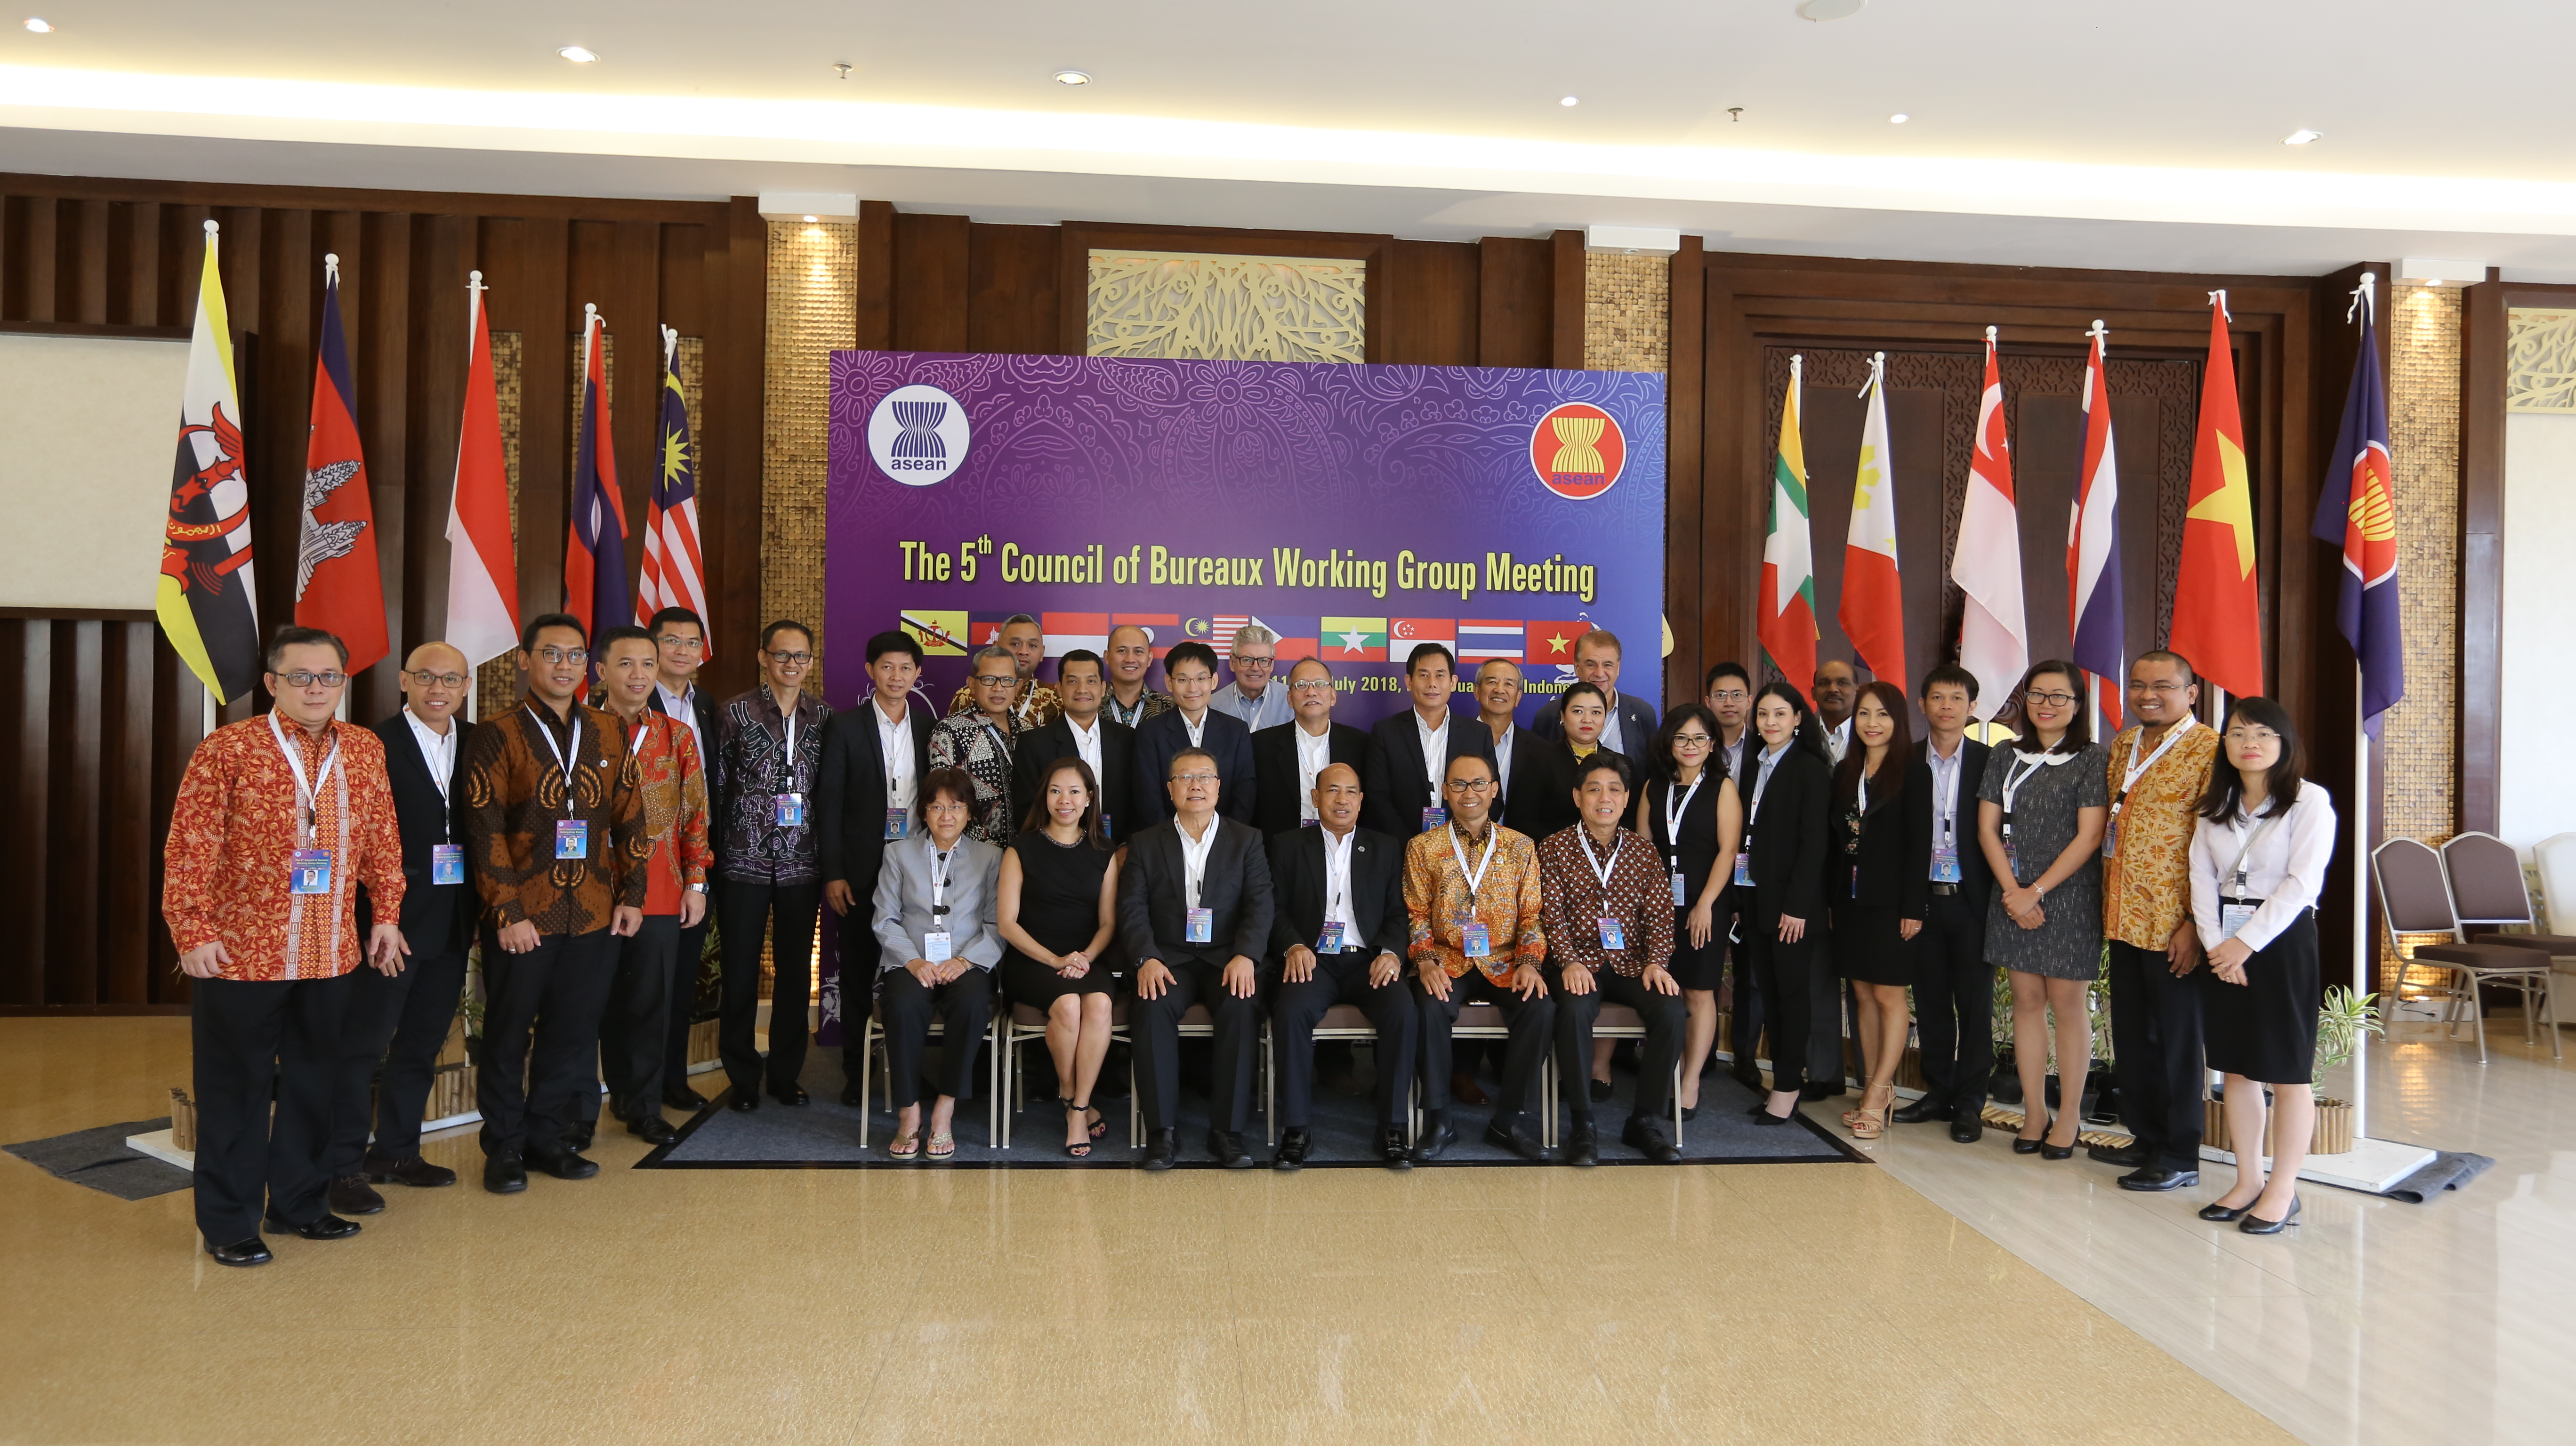 ASEAN Insurance Council_5th Council of B